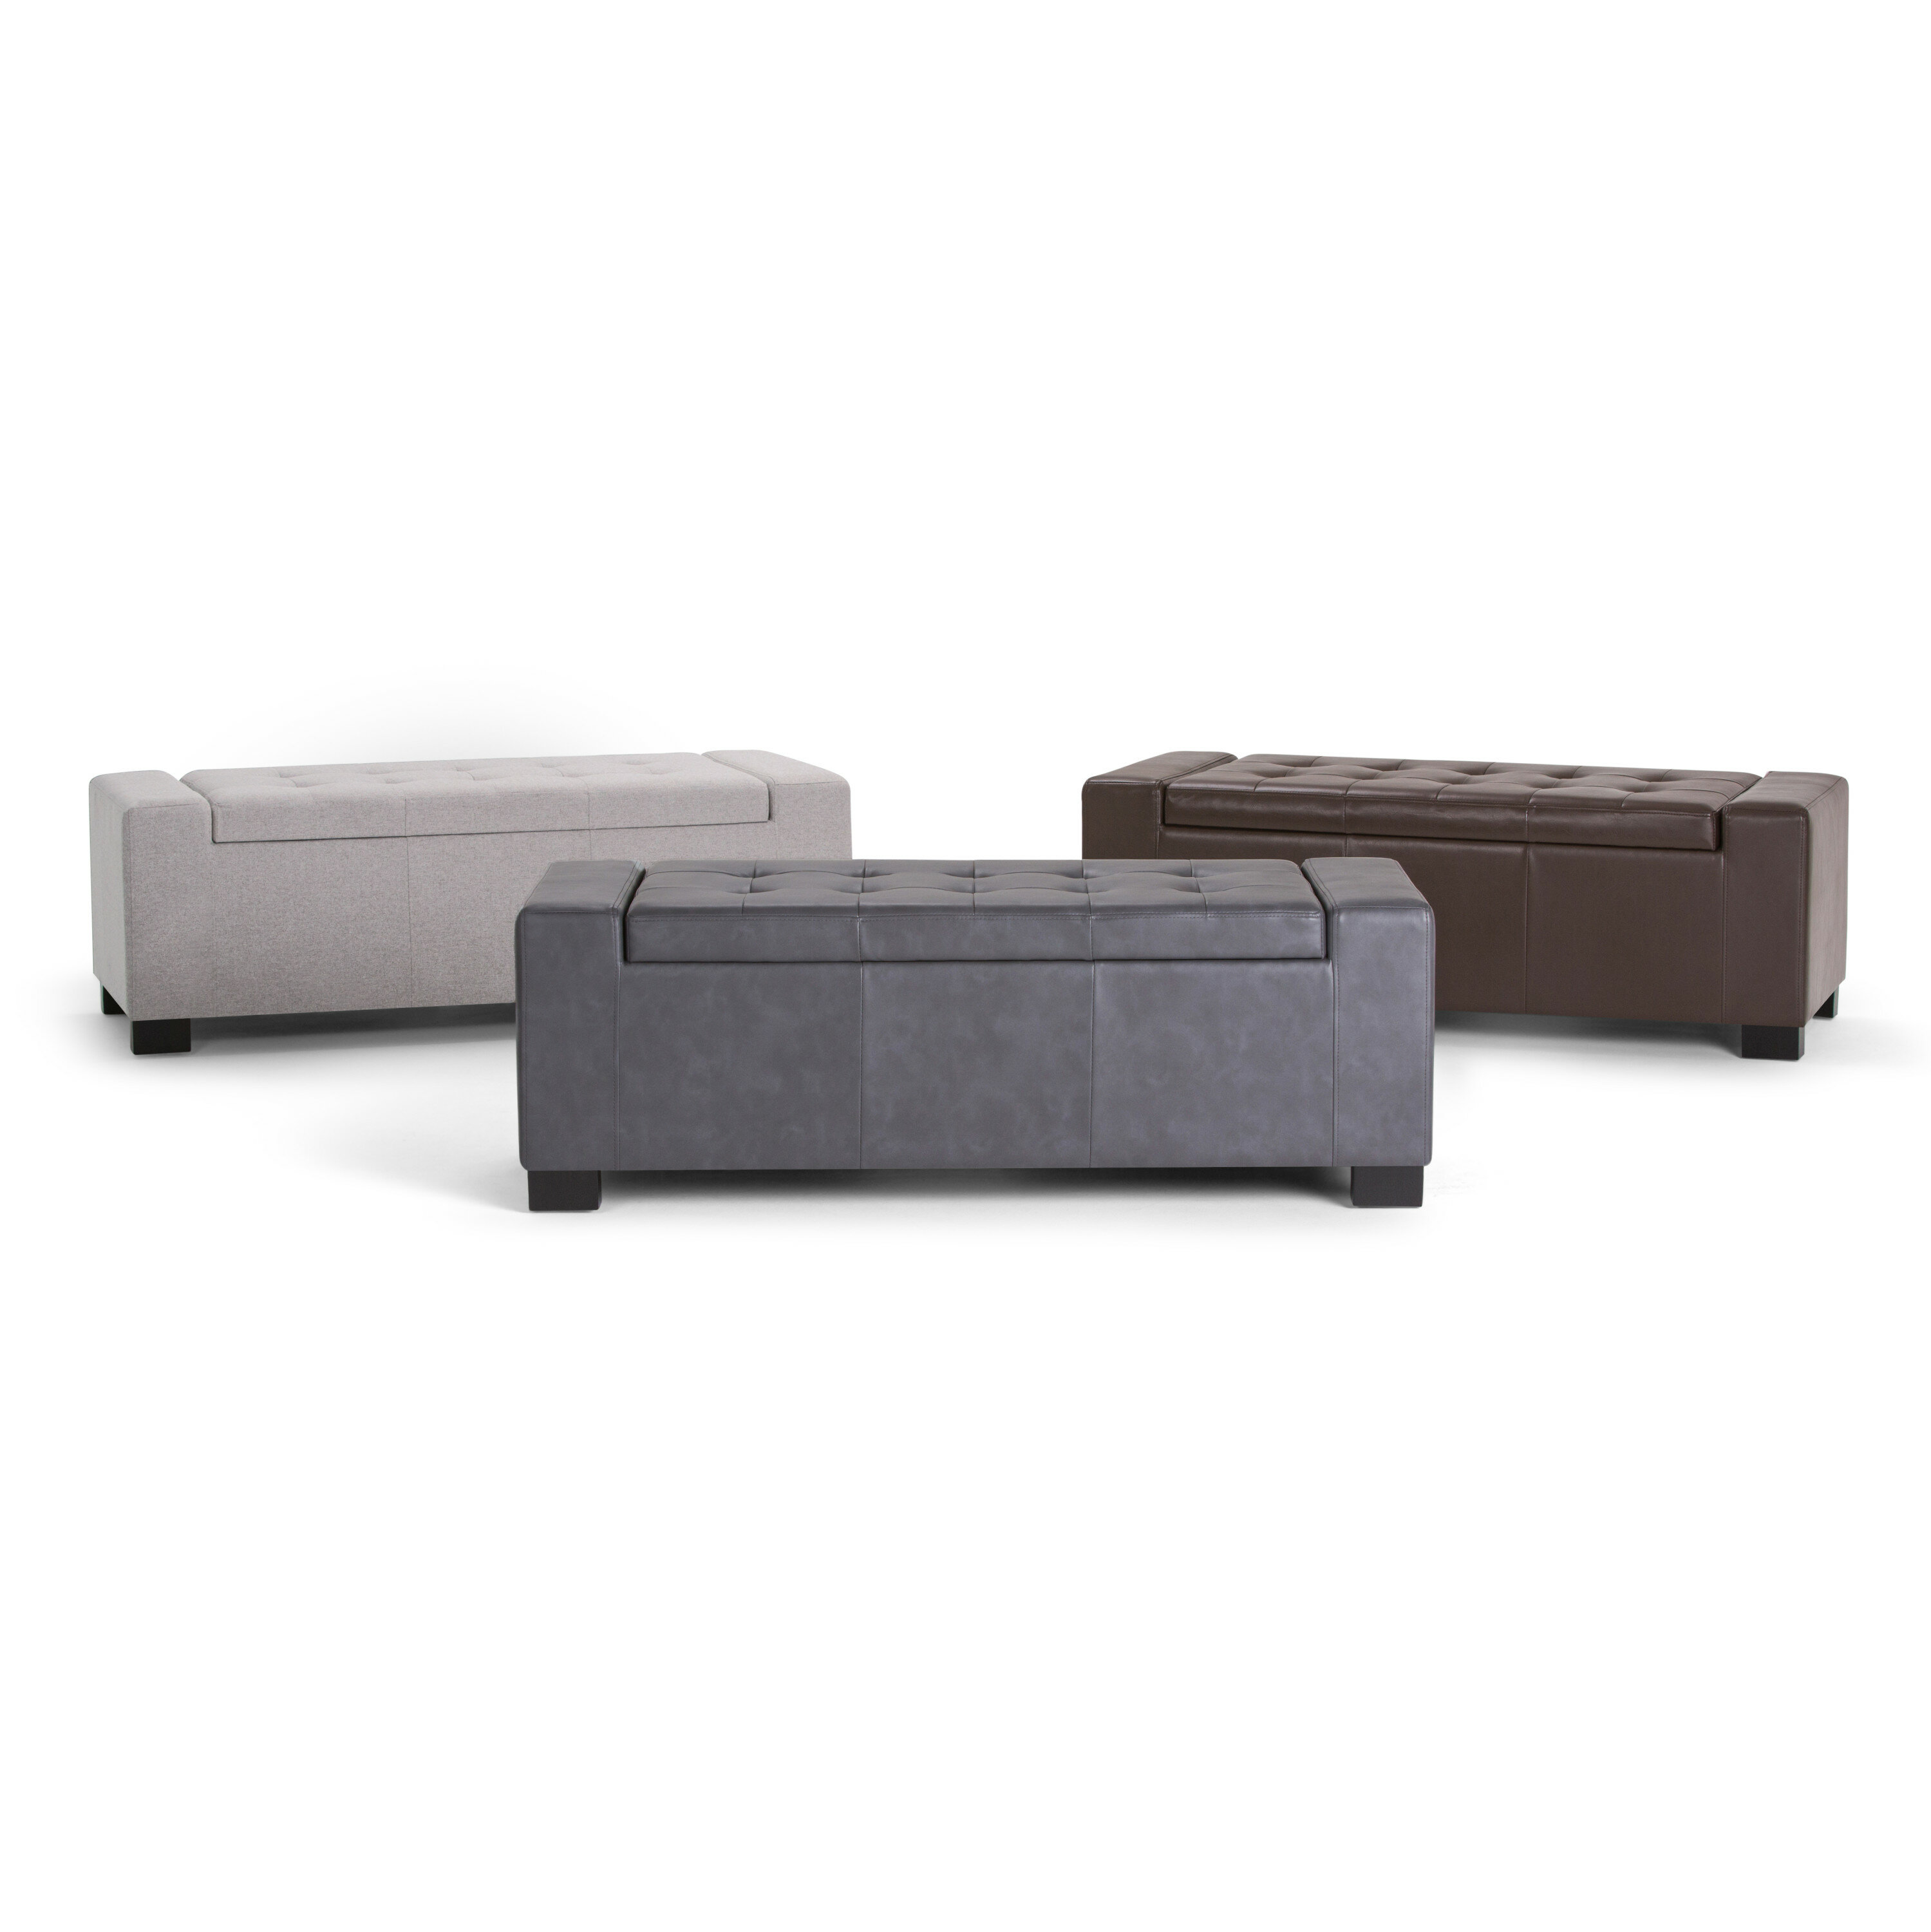 Fine Asdsit Upholstered Storage Ottoman Ocoug Best Dining Table And Chair Ideas Images Ocougorg